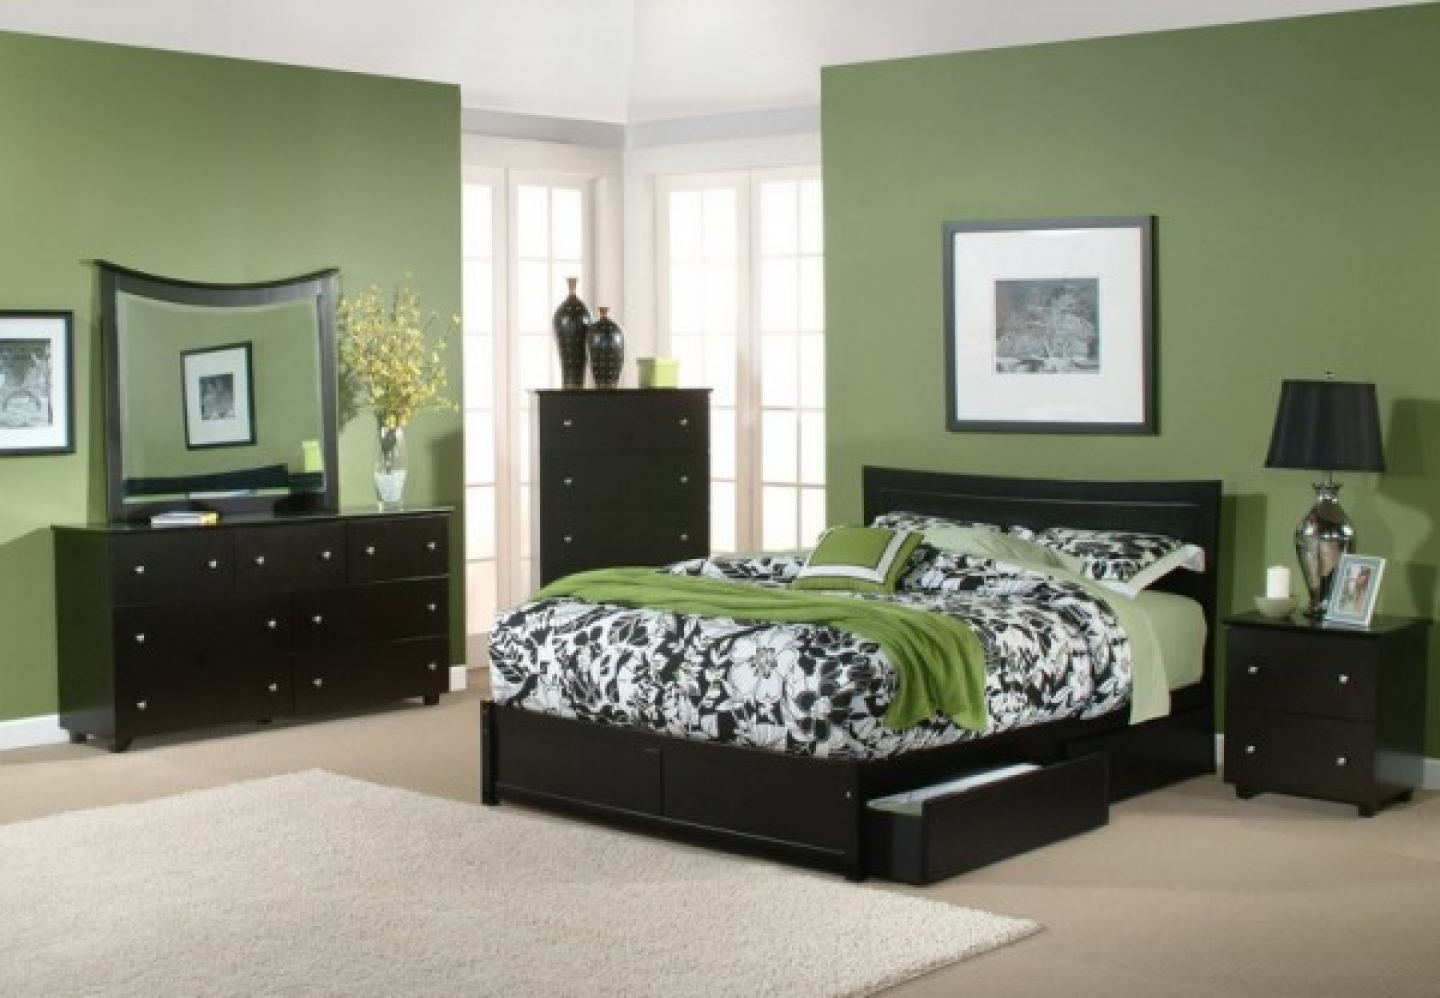 color designs for bedrooms photo - 1